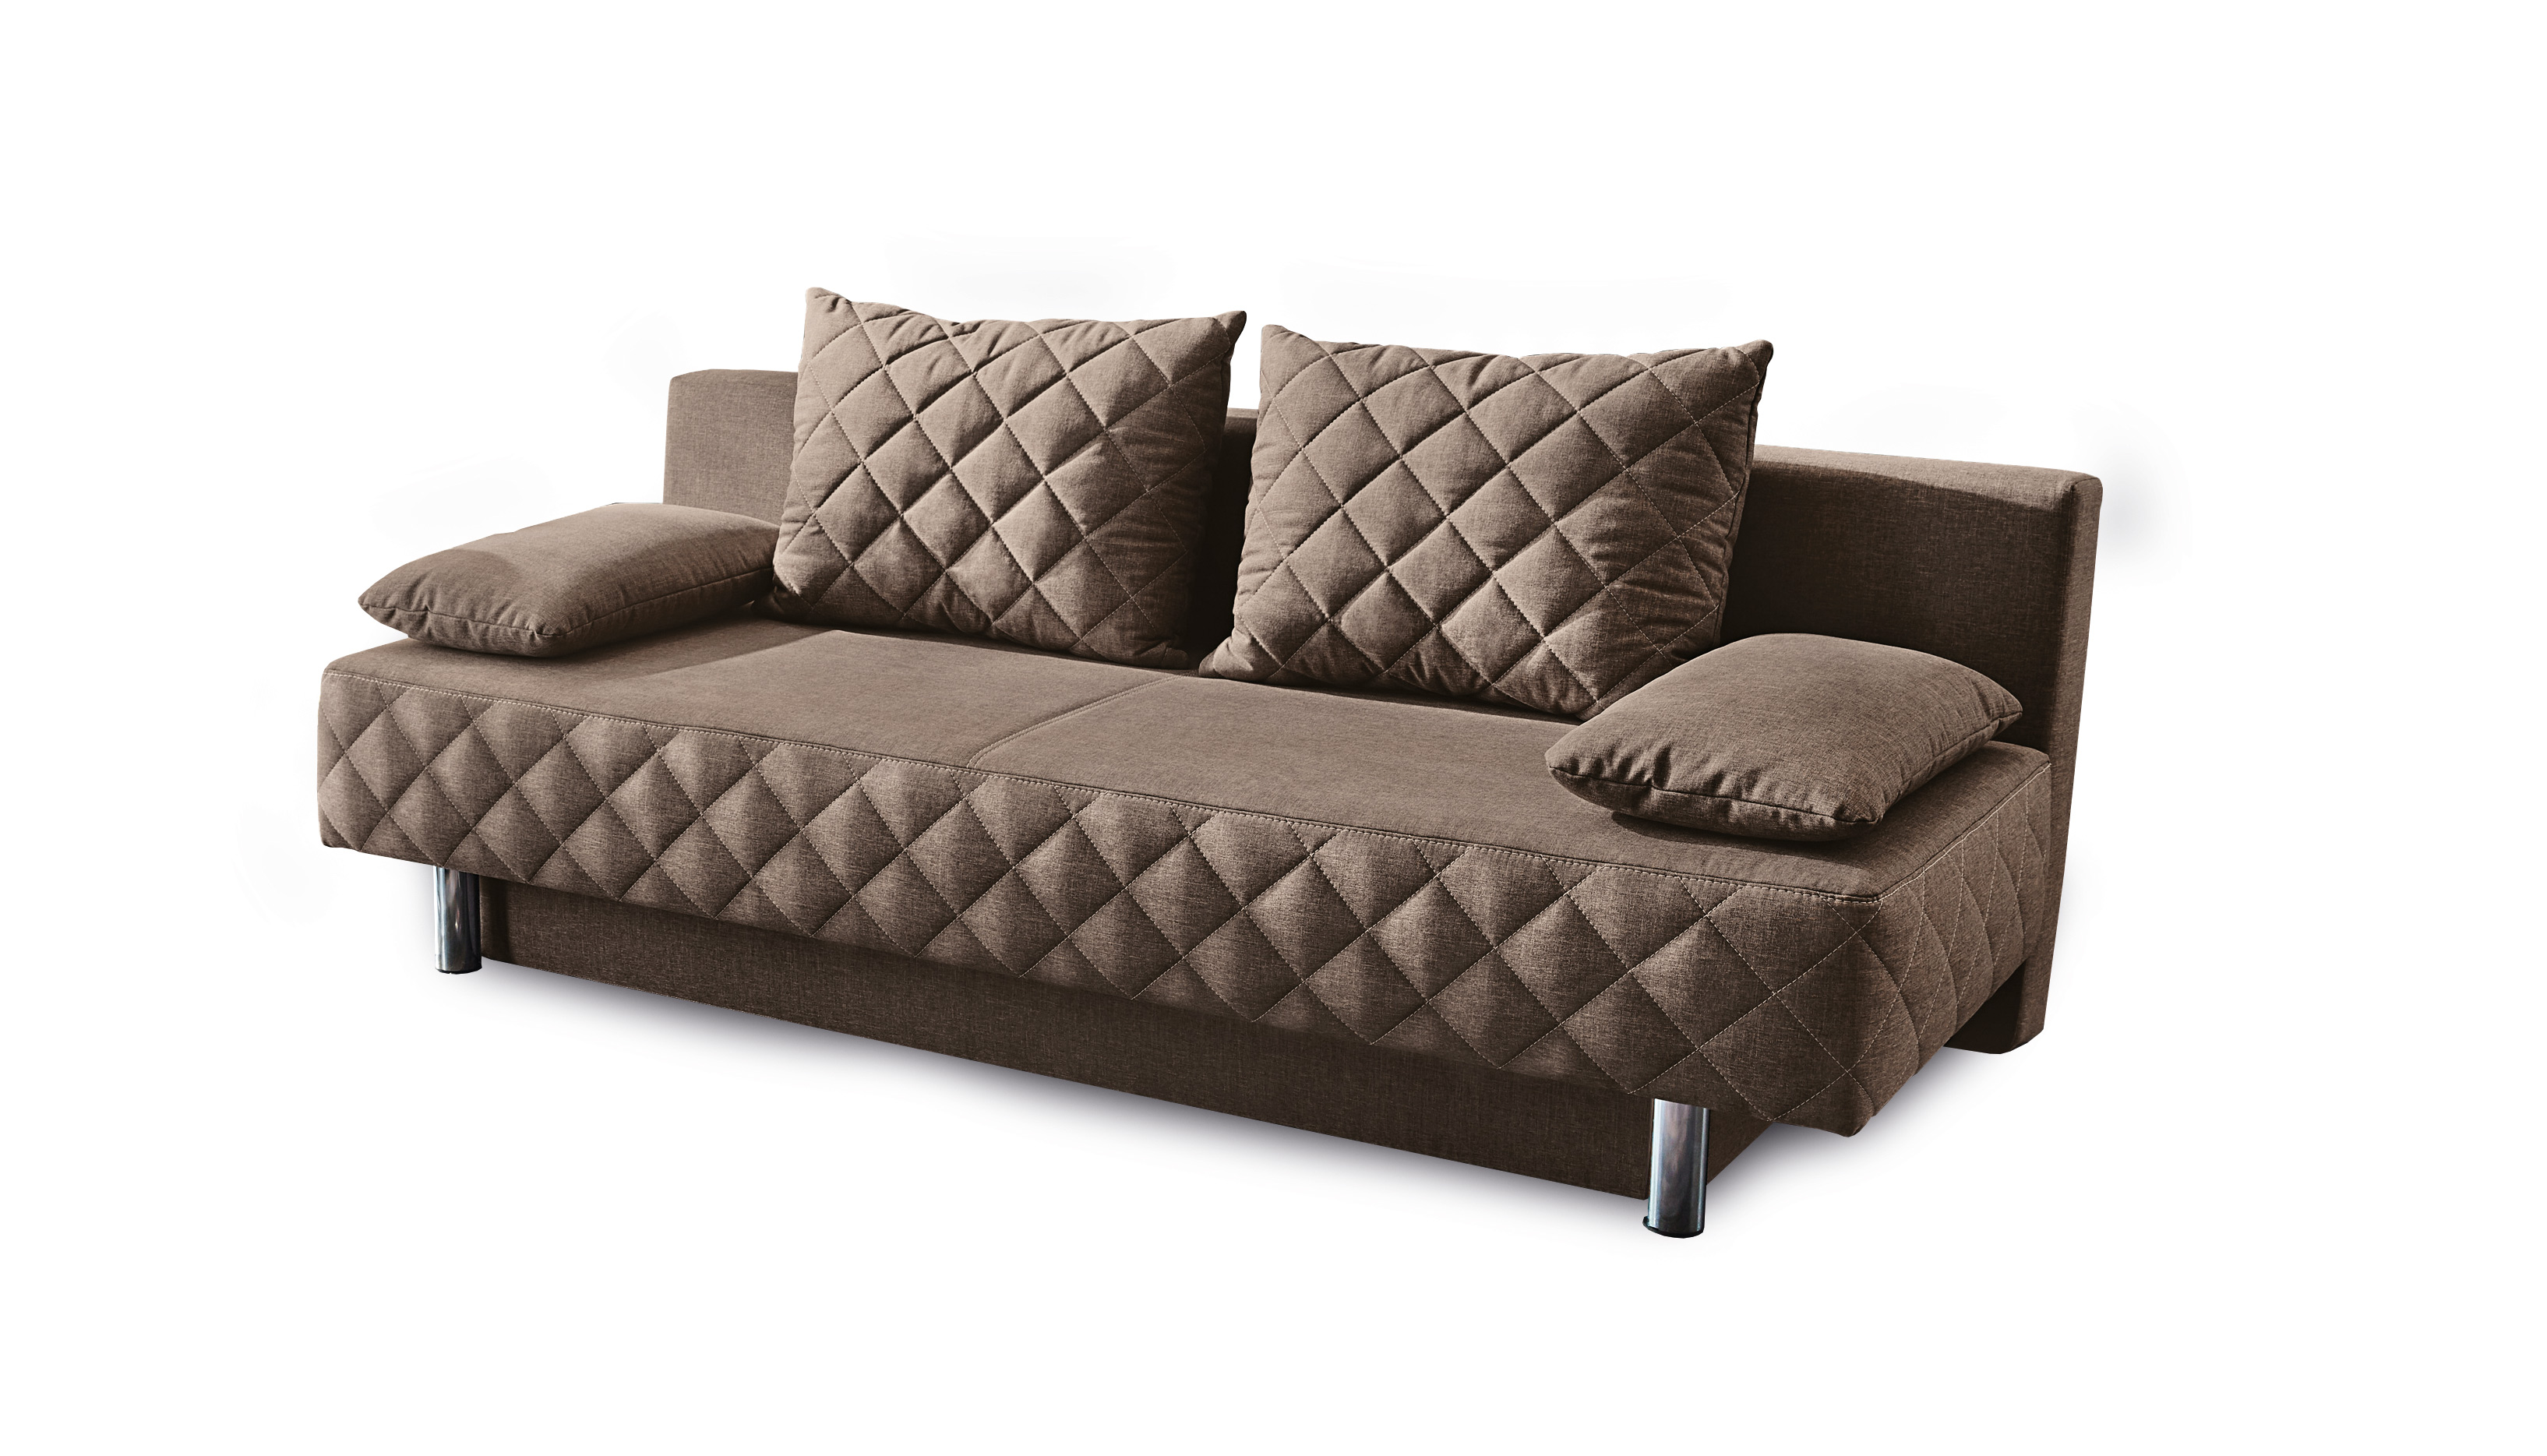 jockenh fer calvin christel schlafsofa braun m bel letz ihr online shop. Black Bedroom Furniture Sets. Home Design Ideas